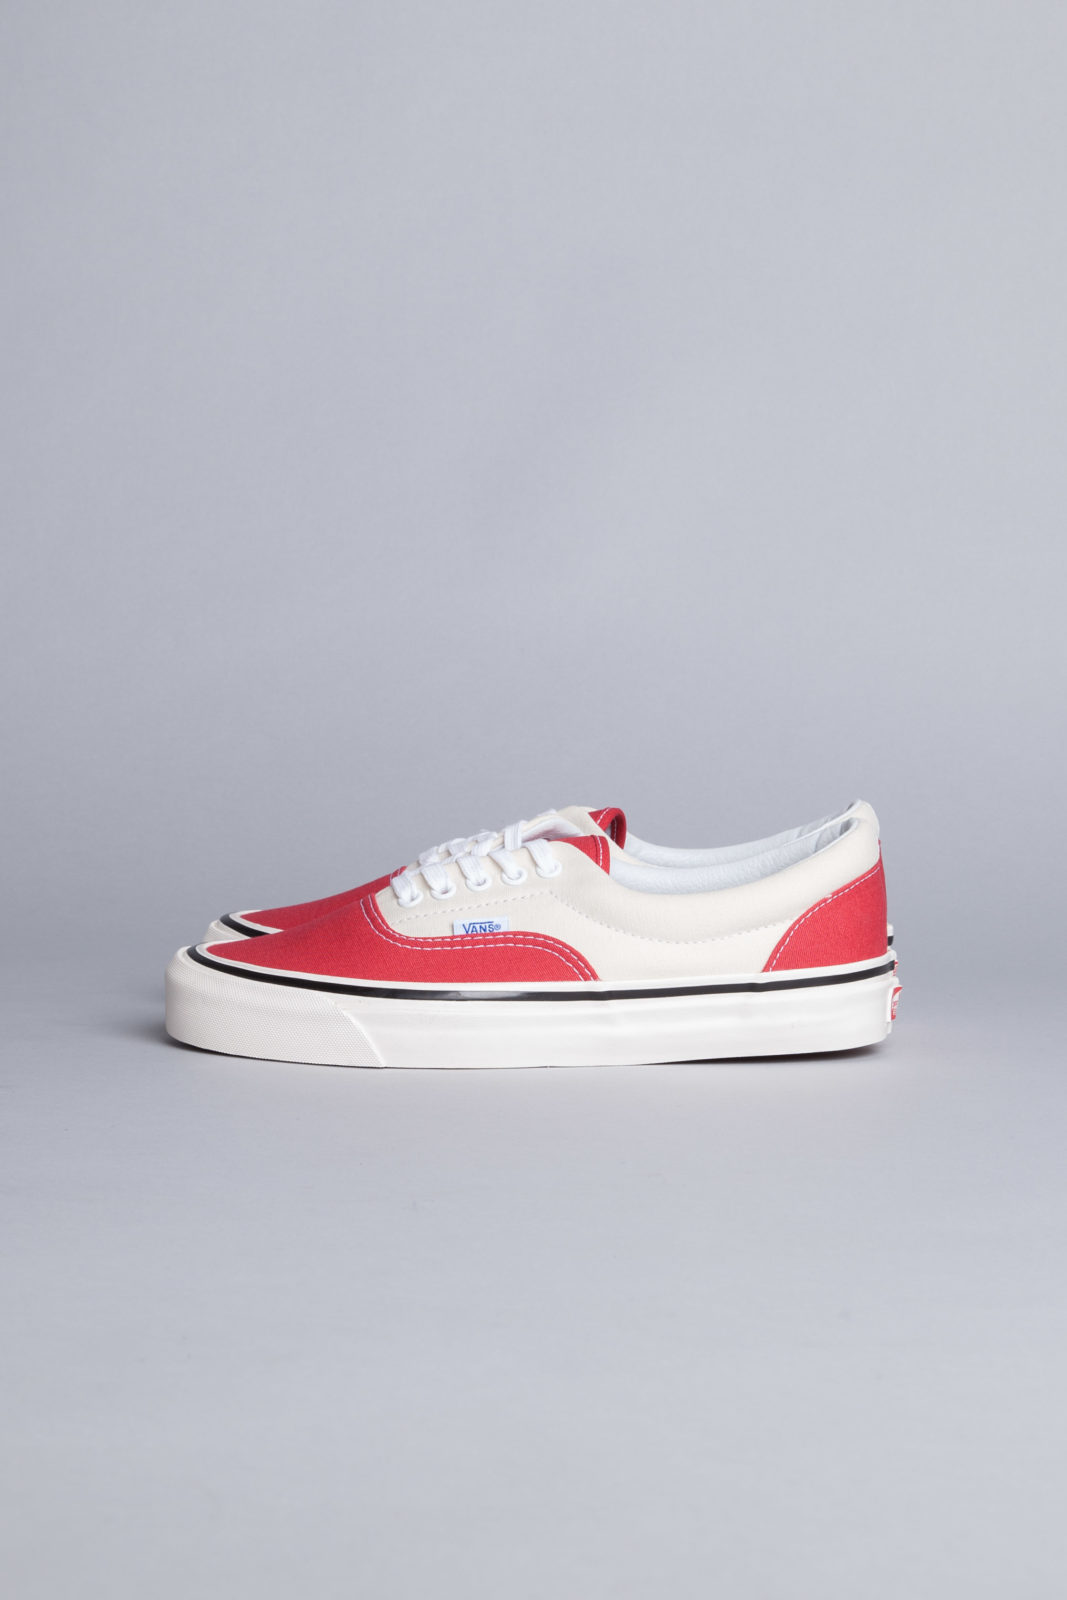 faeb3265b0c6 Vans Era 95 DX OG Red White • Centreville Store in Brussels